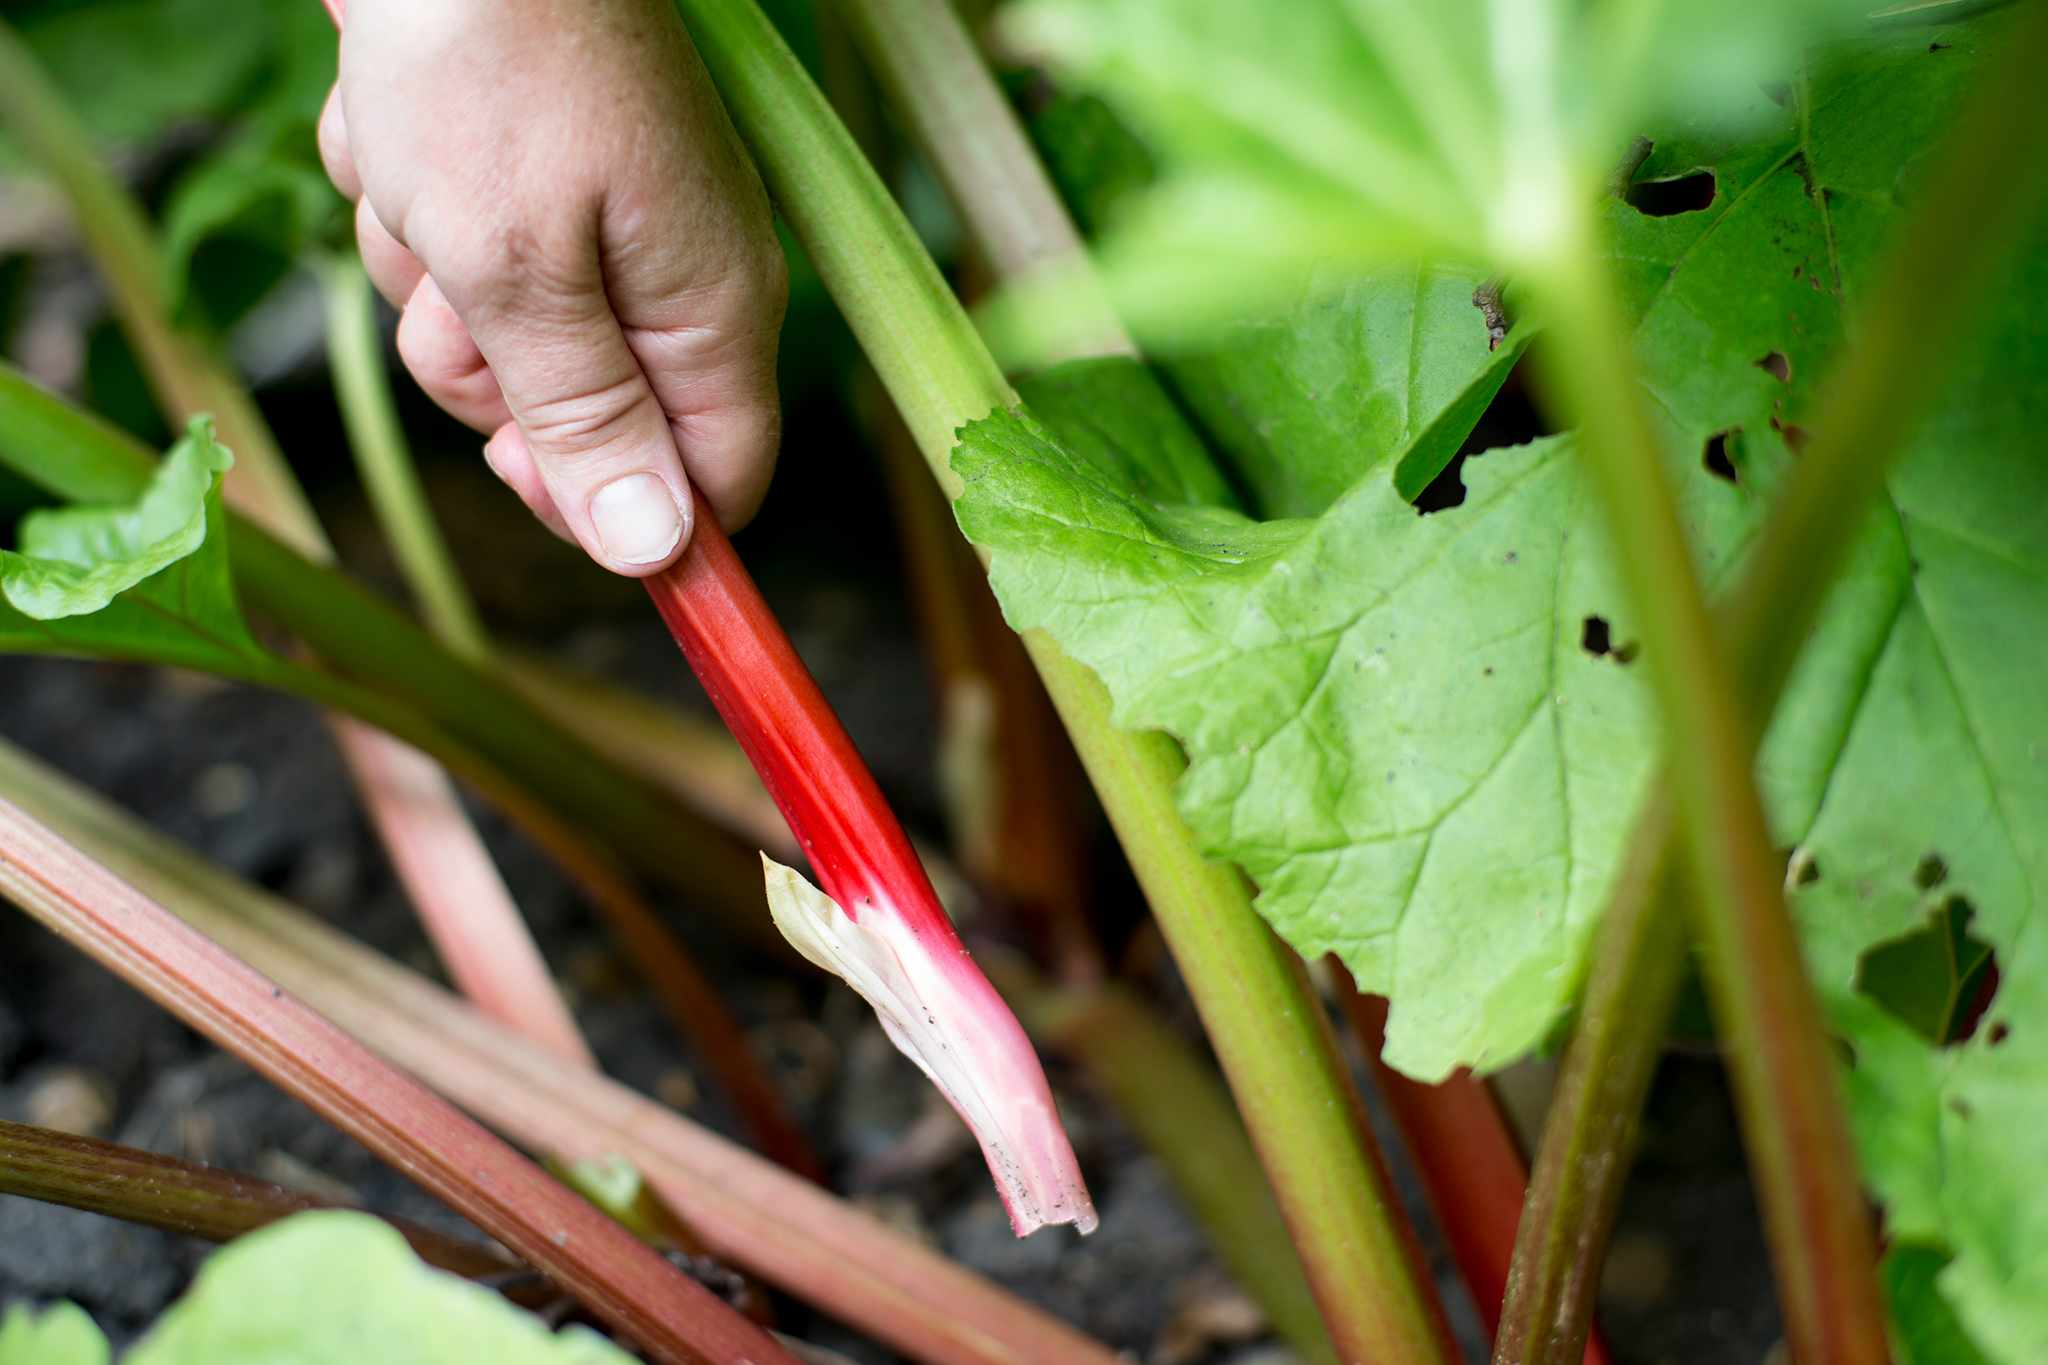 Harvesting rhubarb stems from base of plant